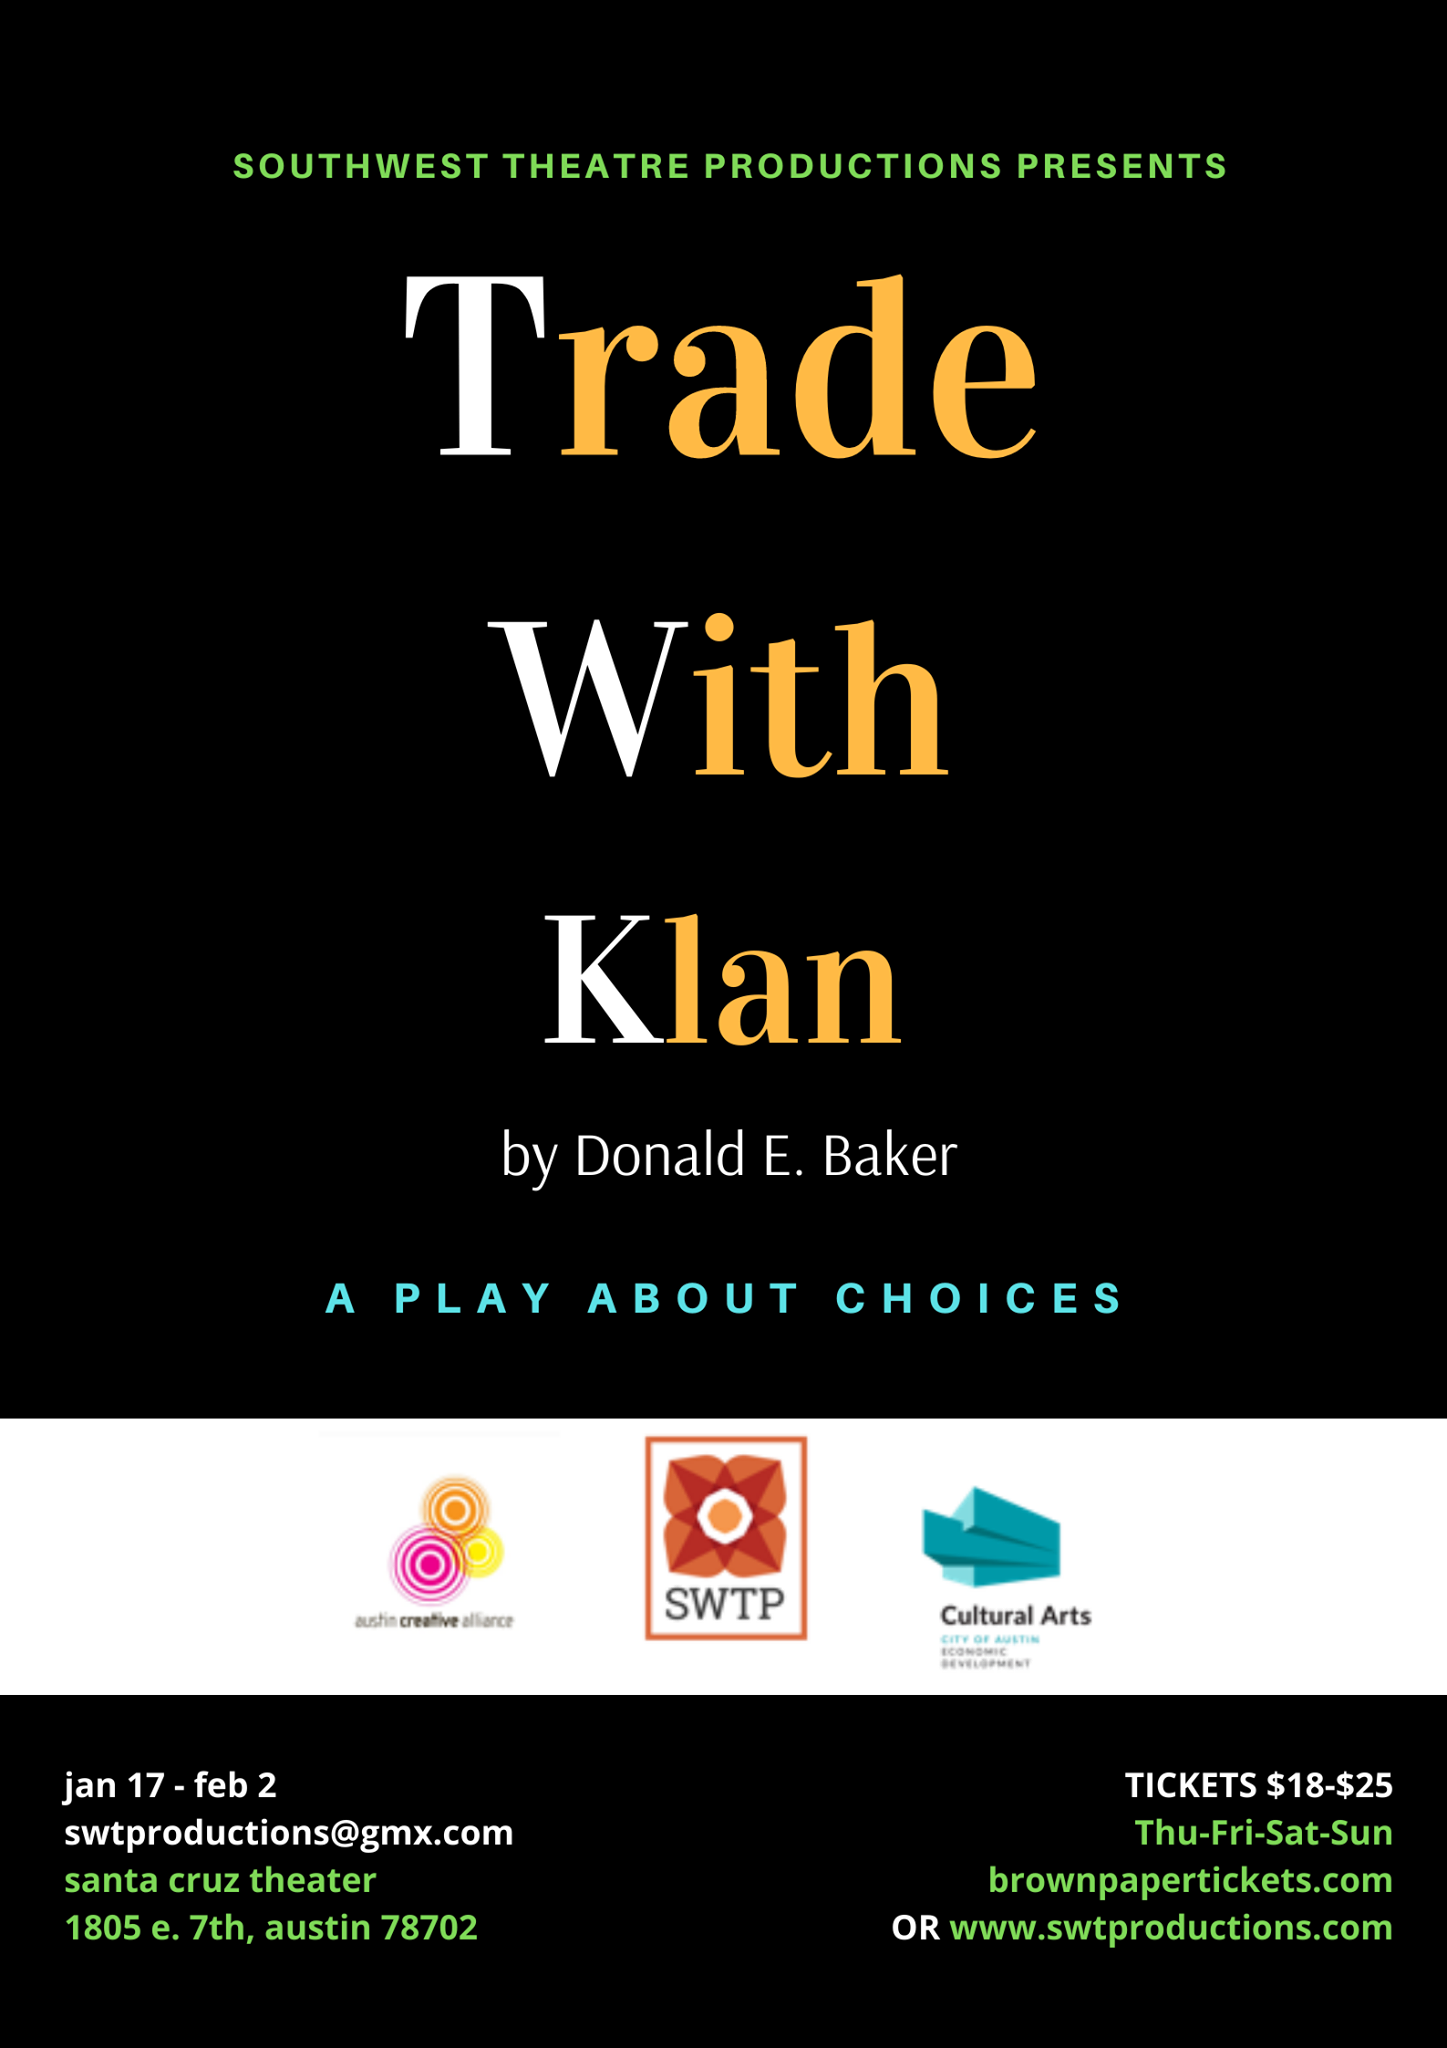 Trade with Klan by Southwest Theatre Productions